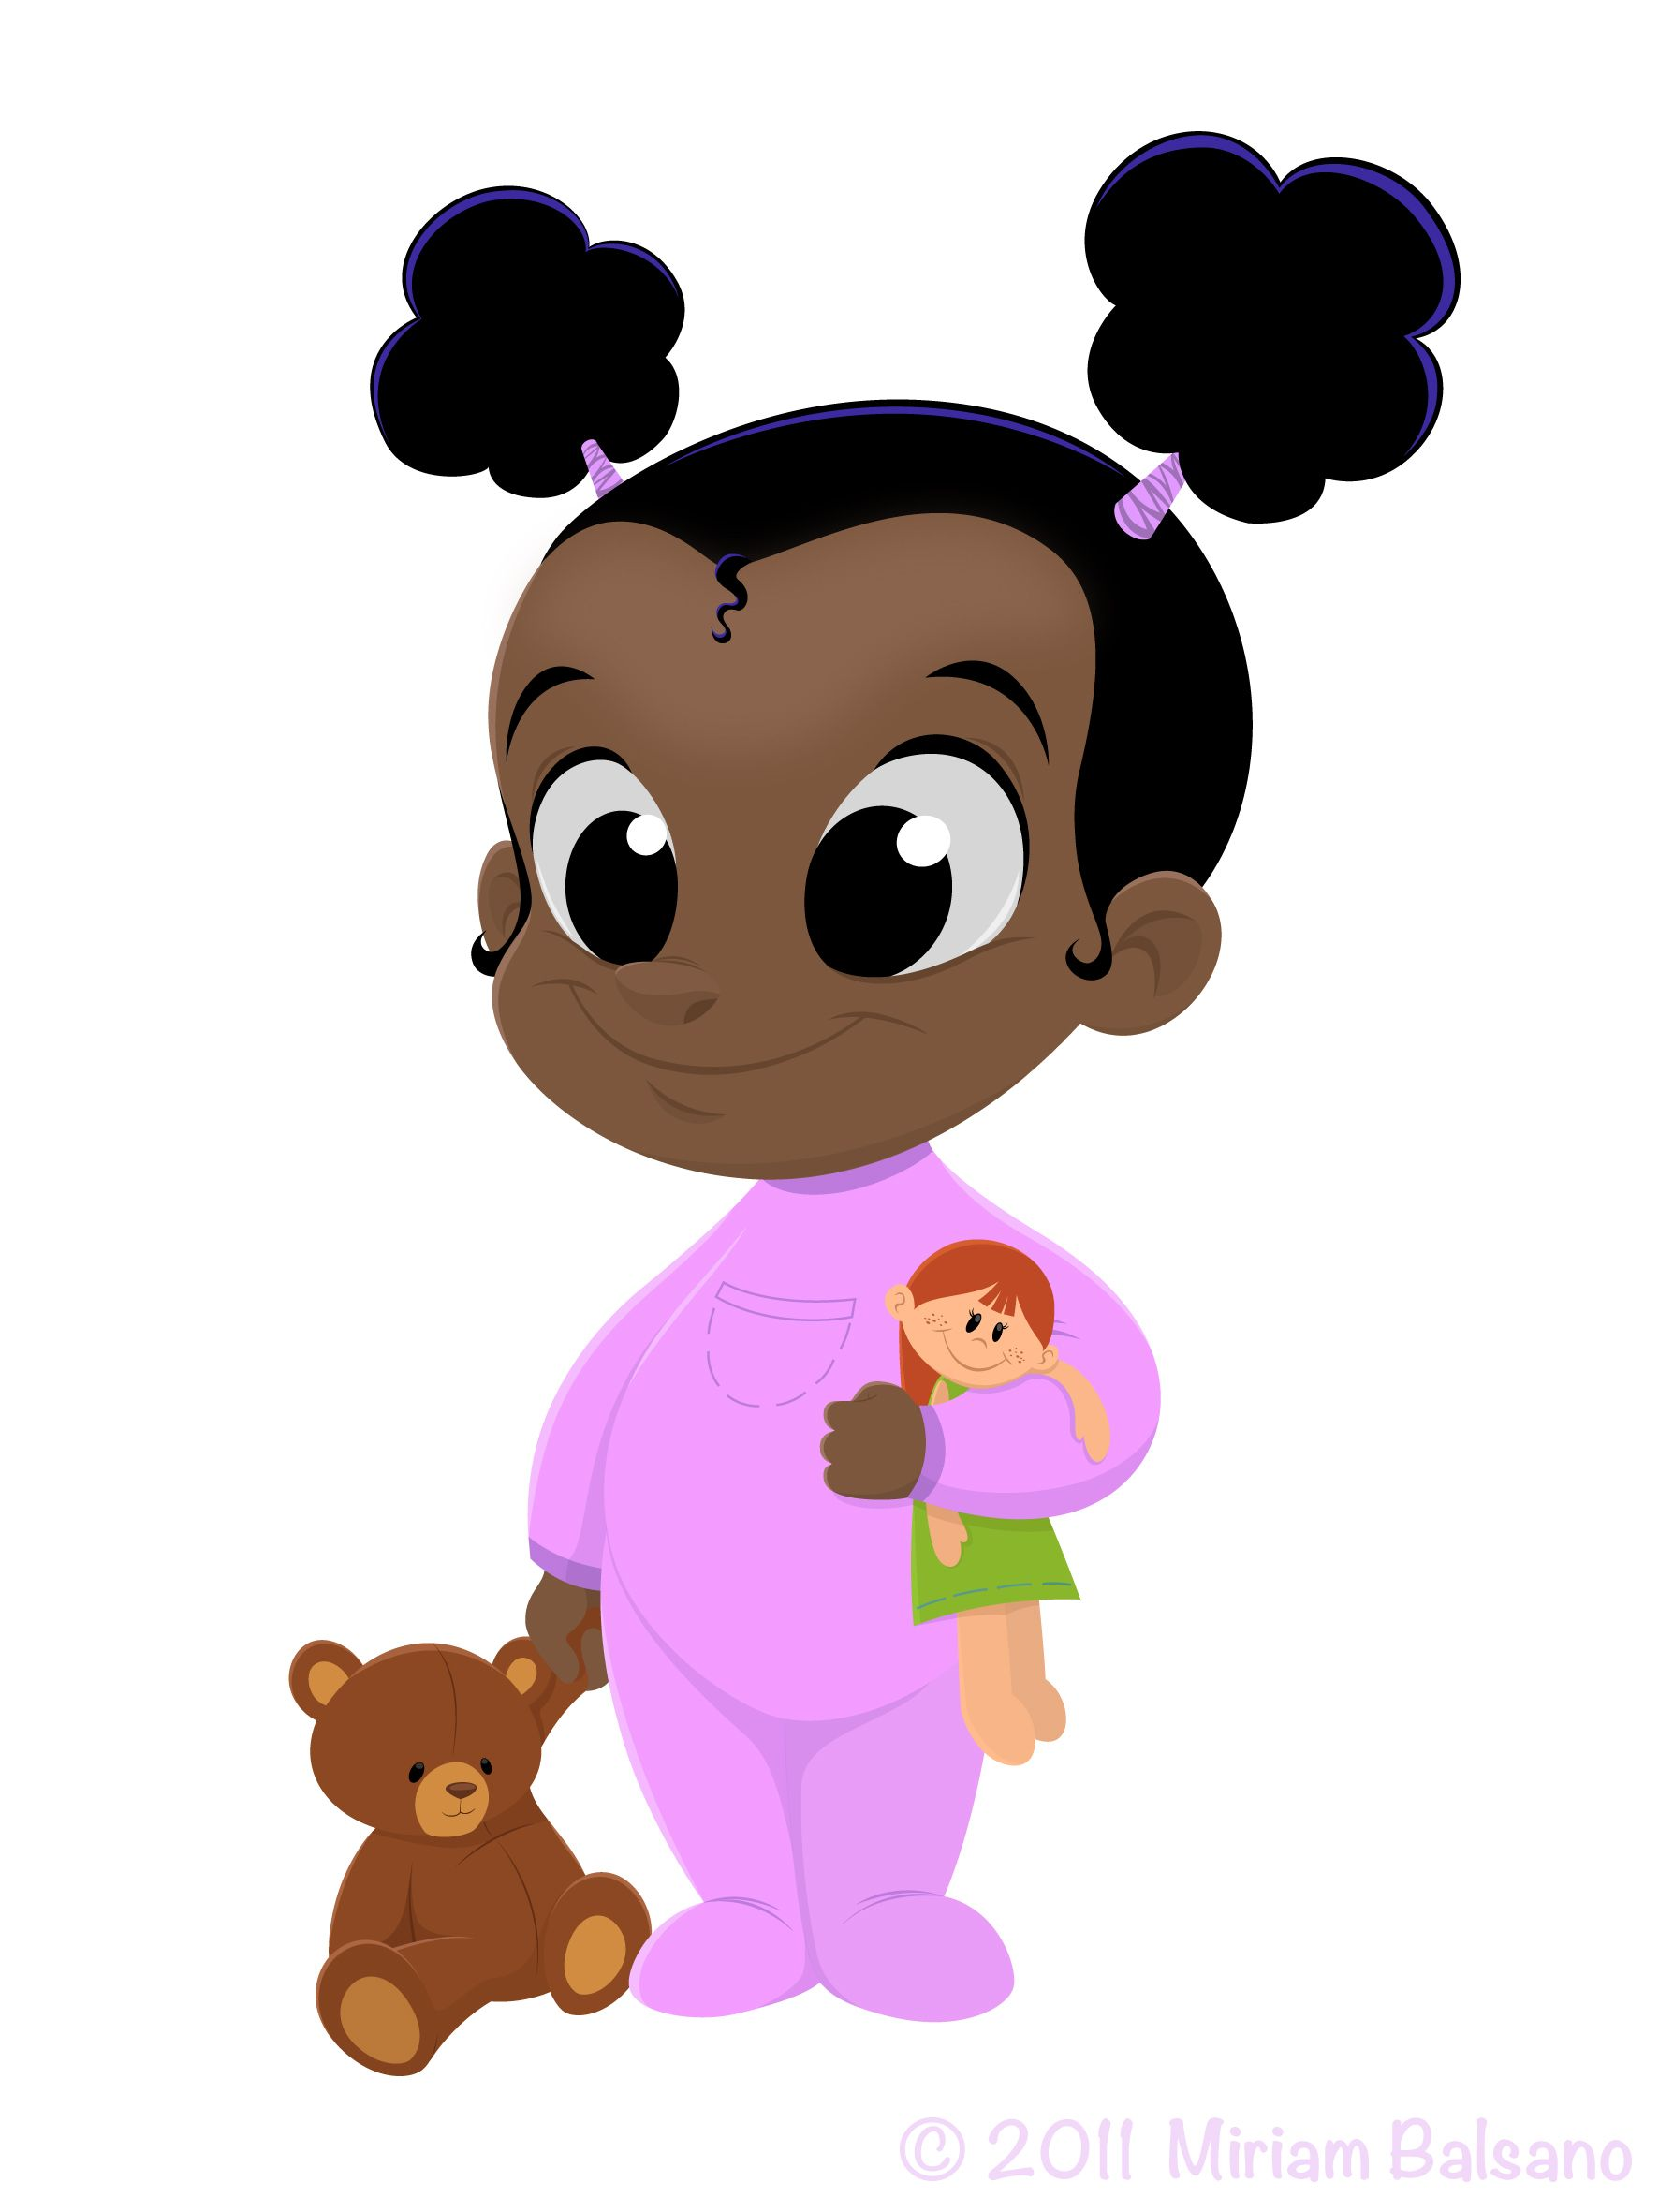 Black baby for an animation project | Character design ...